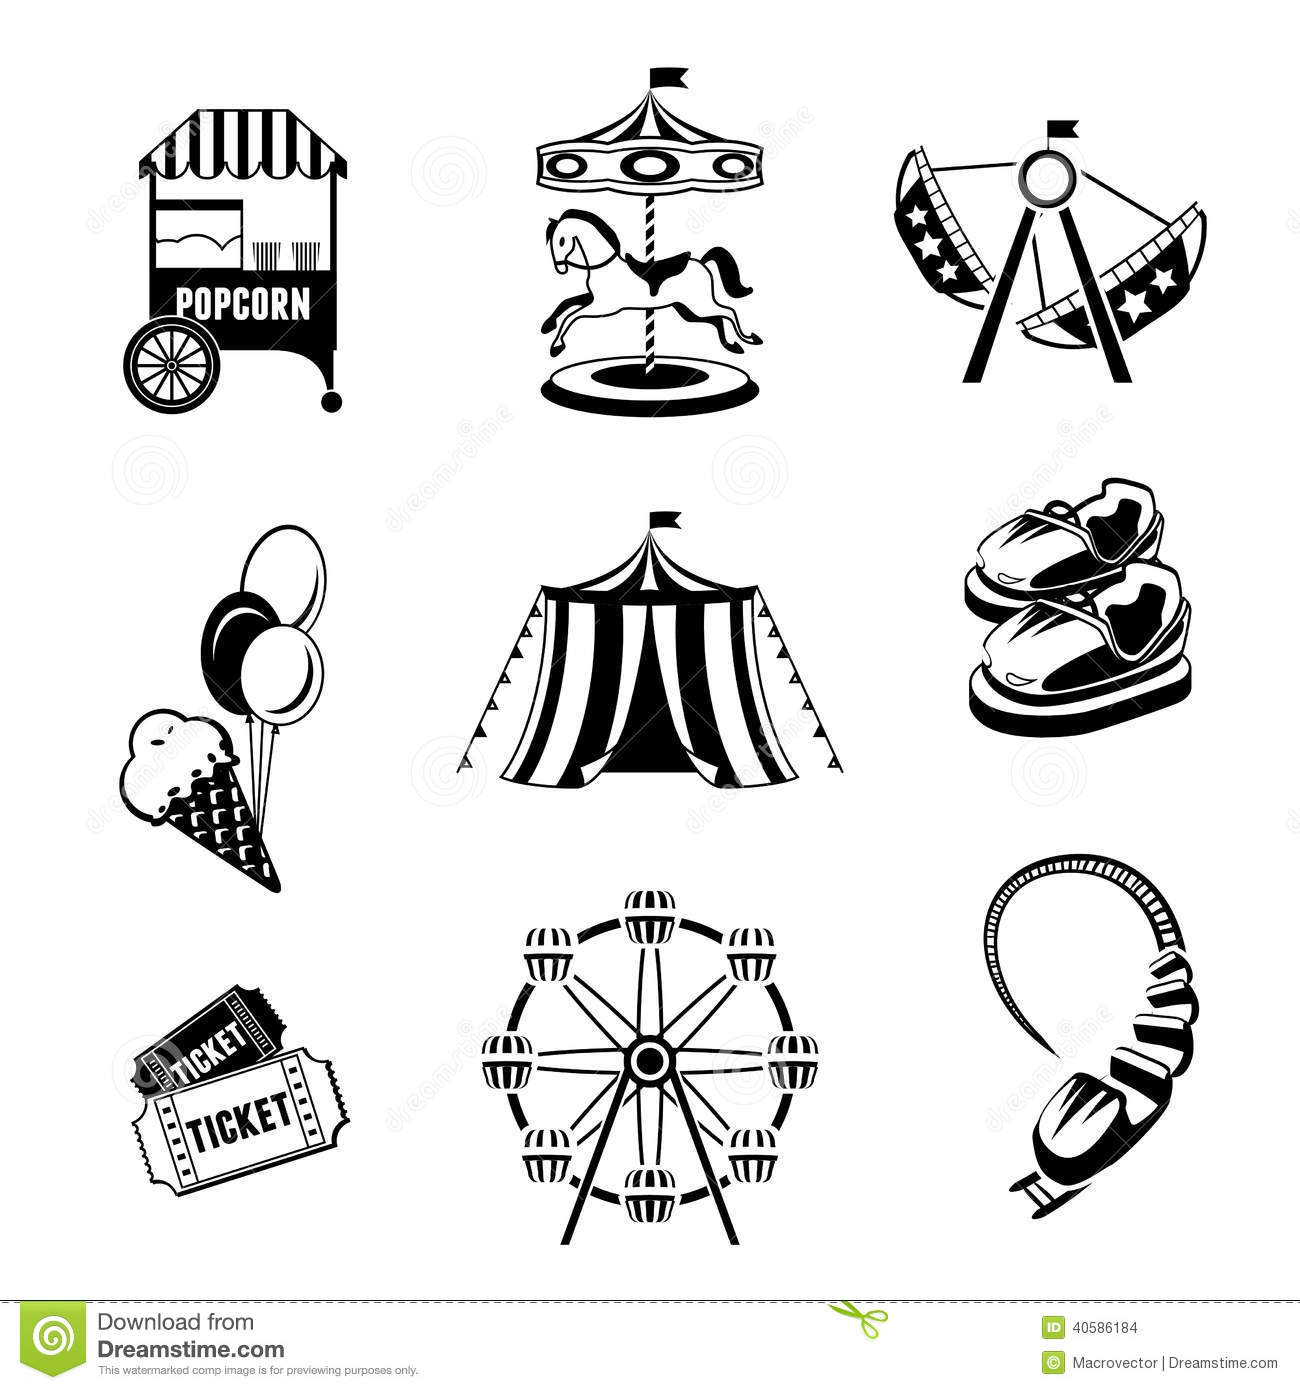 How To Draw A Train For Kids Step By Step moreover Stock Images Amusement Park Elements Entertainment Black White Icons Set Isolated Vector Illustration Image40586184 furthermore 2 together with Free Coloring Pages For Kids together with Stained Glass Printouts. on train cars clip art